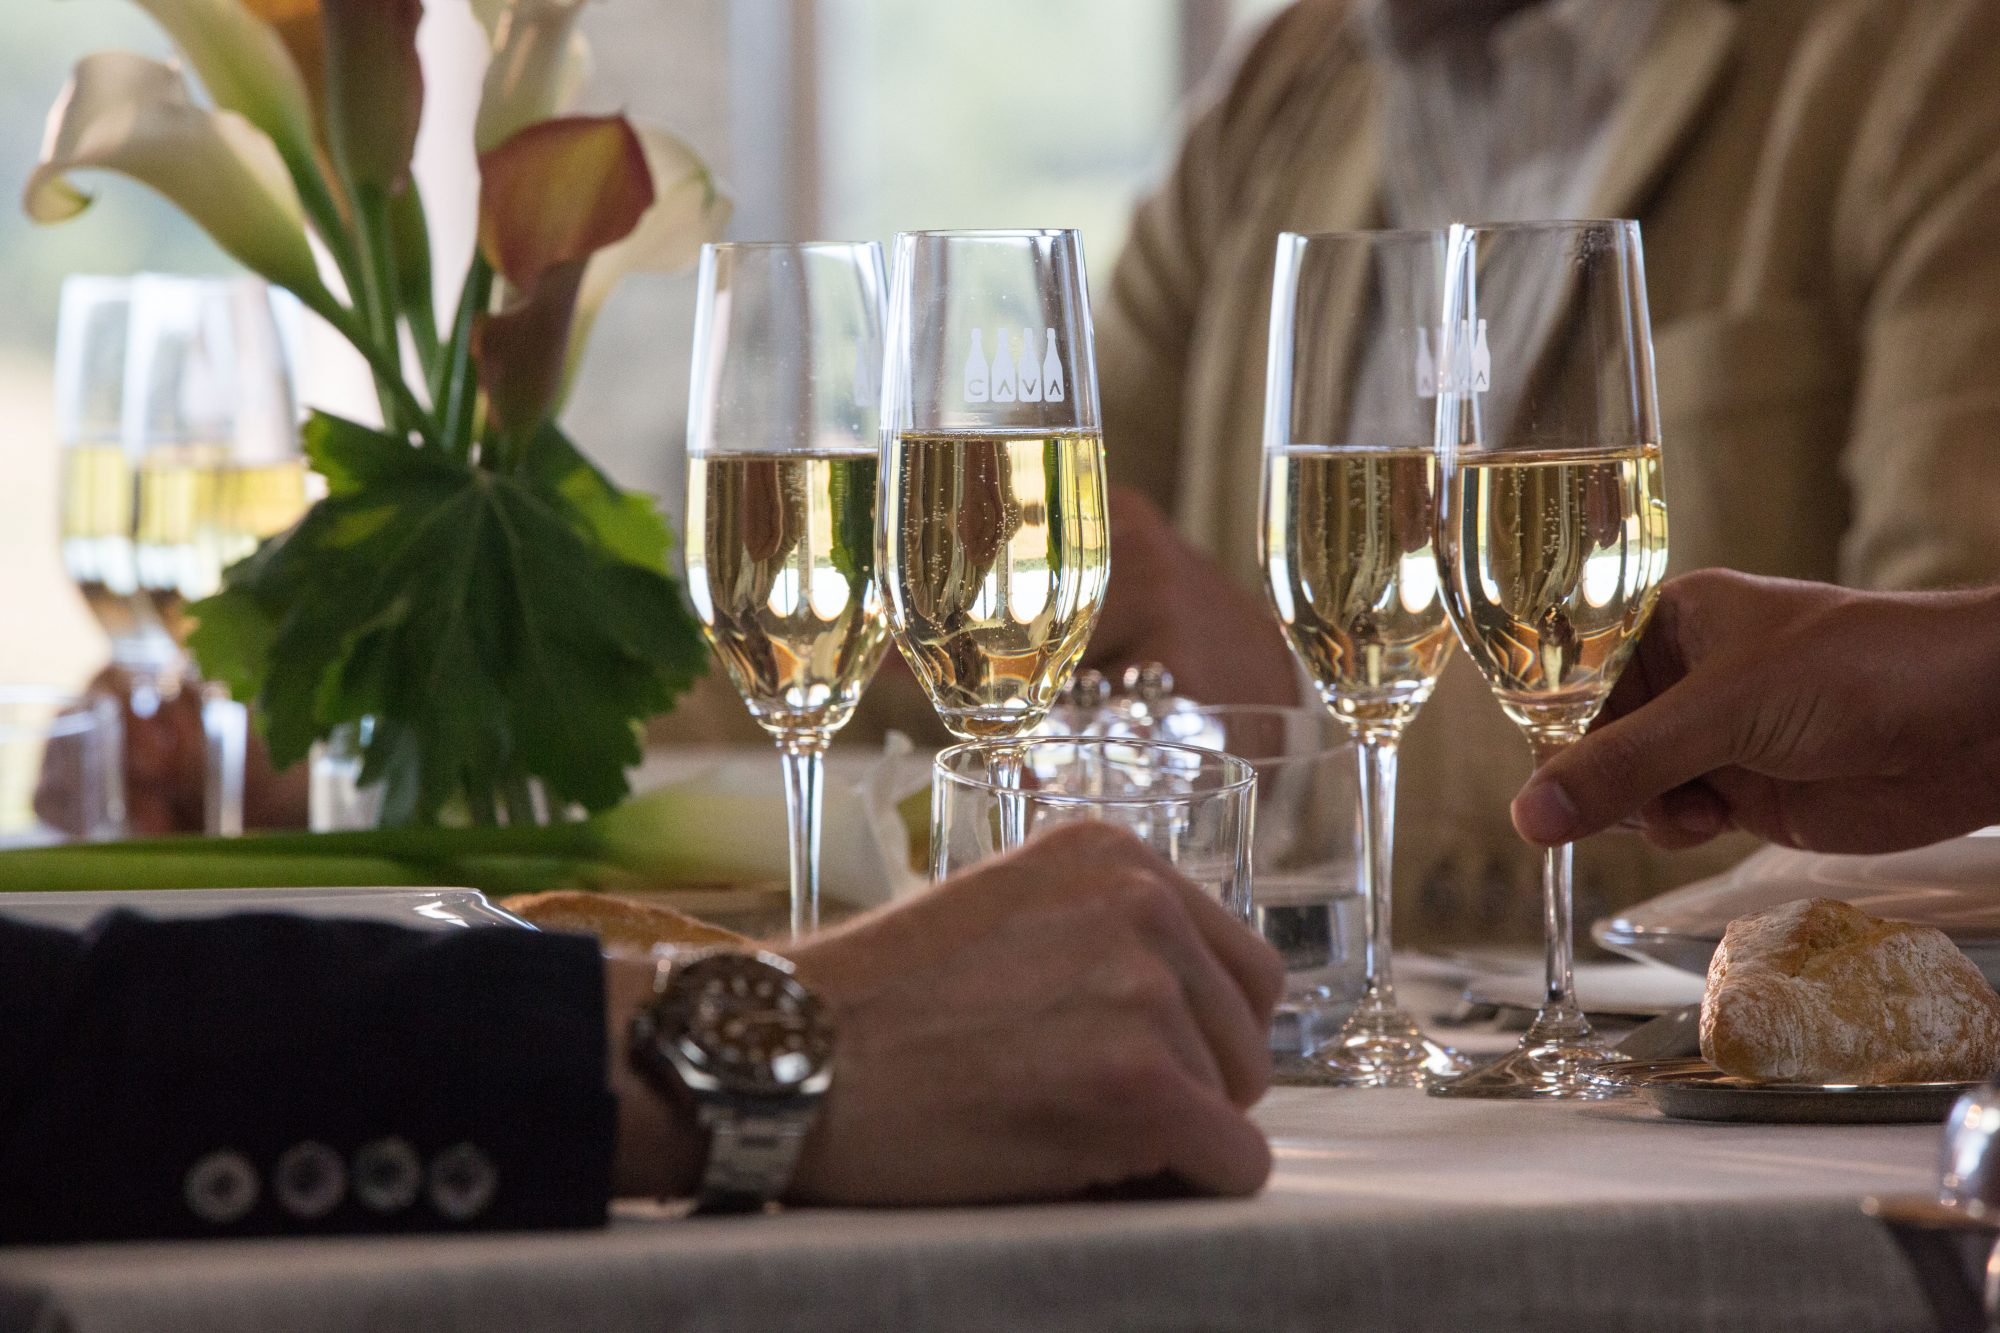 hands reaching for glasses of cava on table